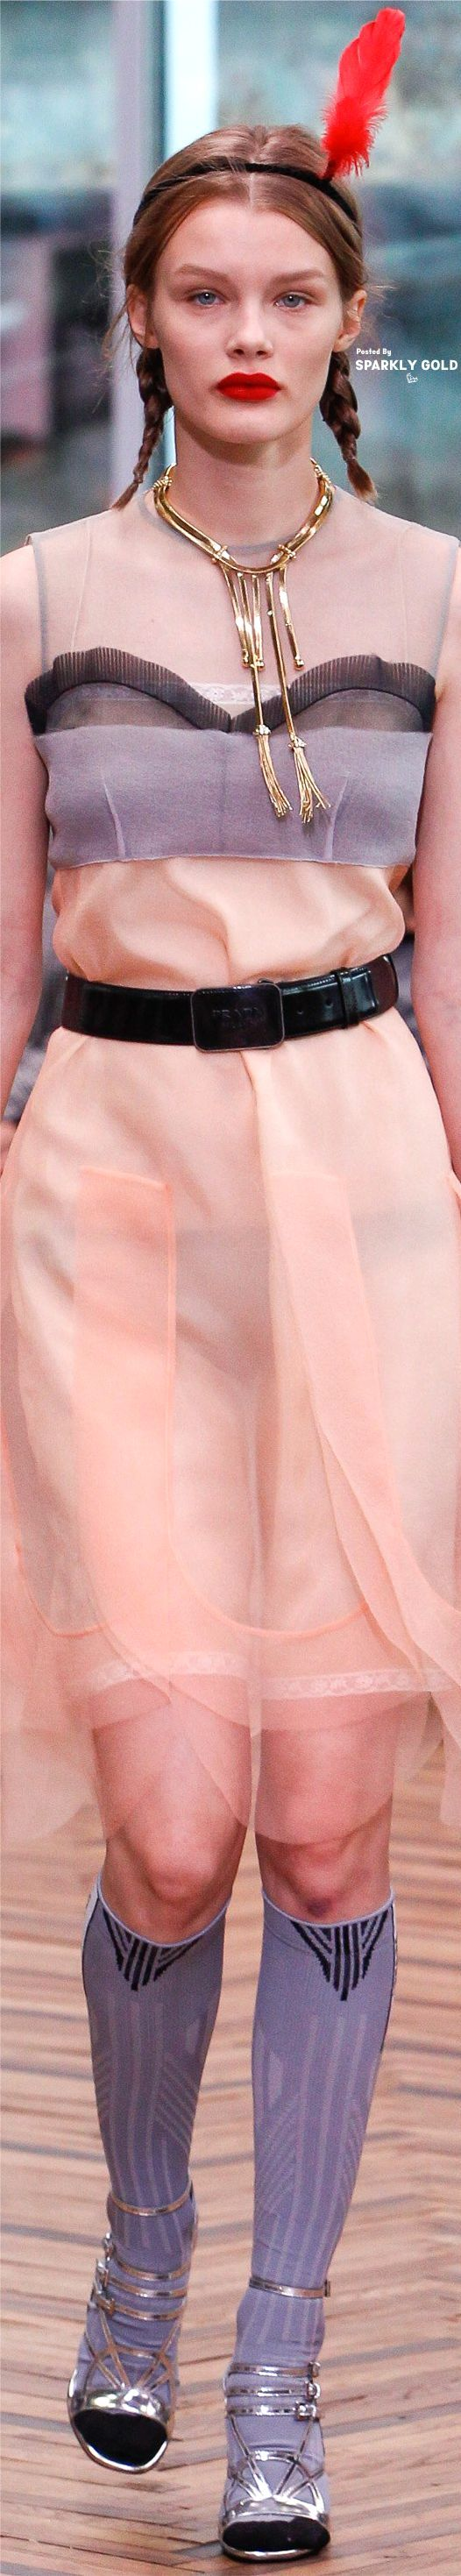 Prada Resort 2018 | PRADA | Pinterest | Color rosa, De las mujeres y ...